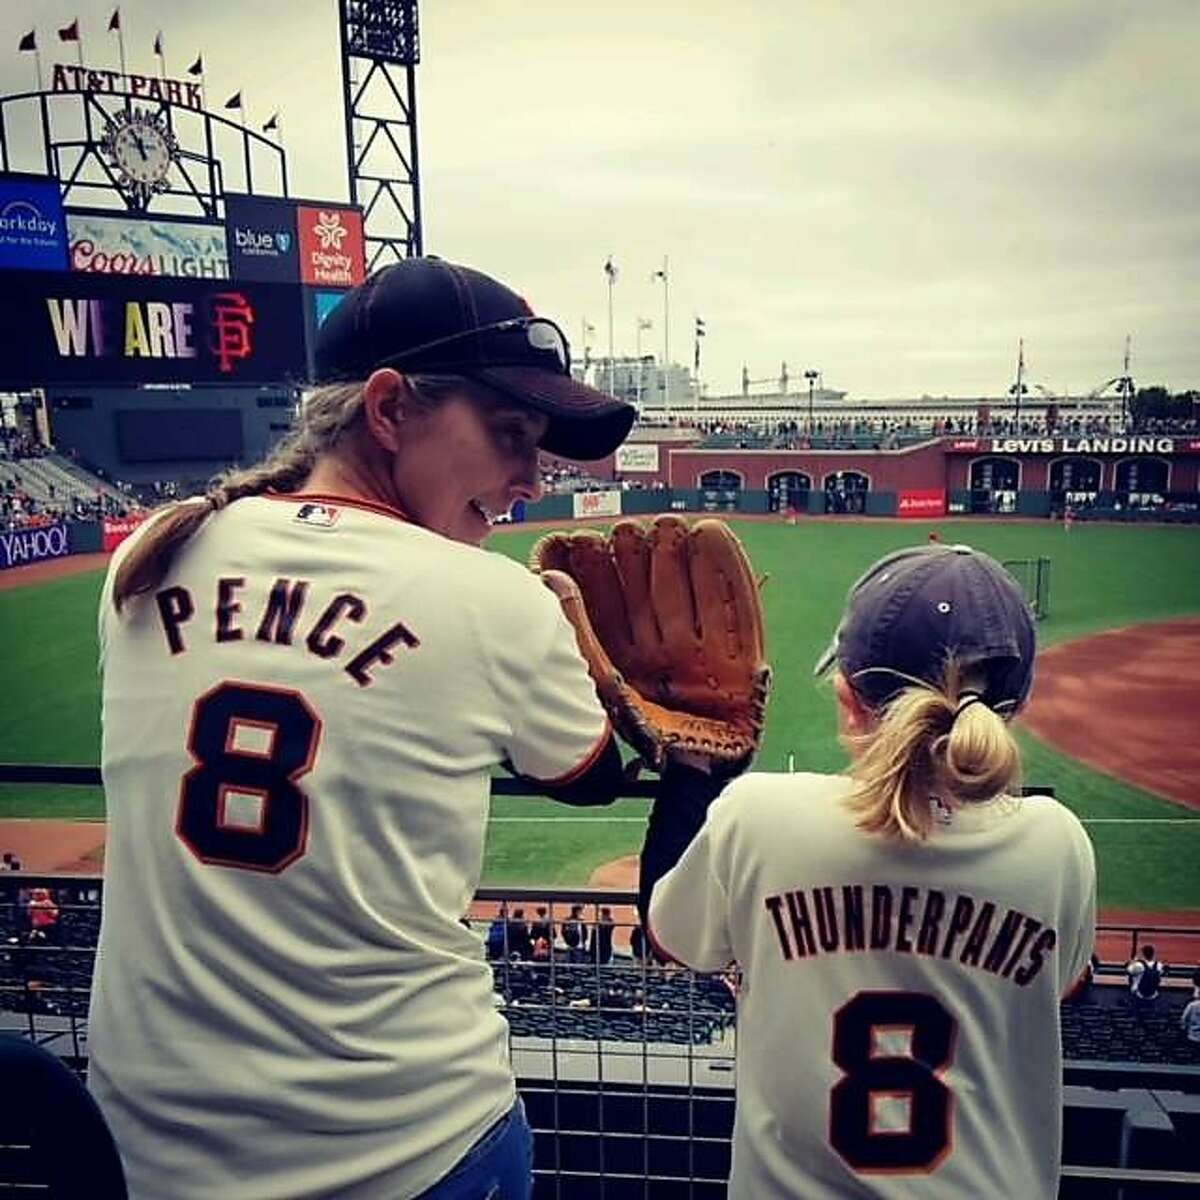 Jennifer Golick at a Giants game with her daughter, who is now 8 years old.